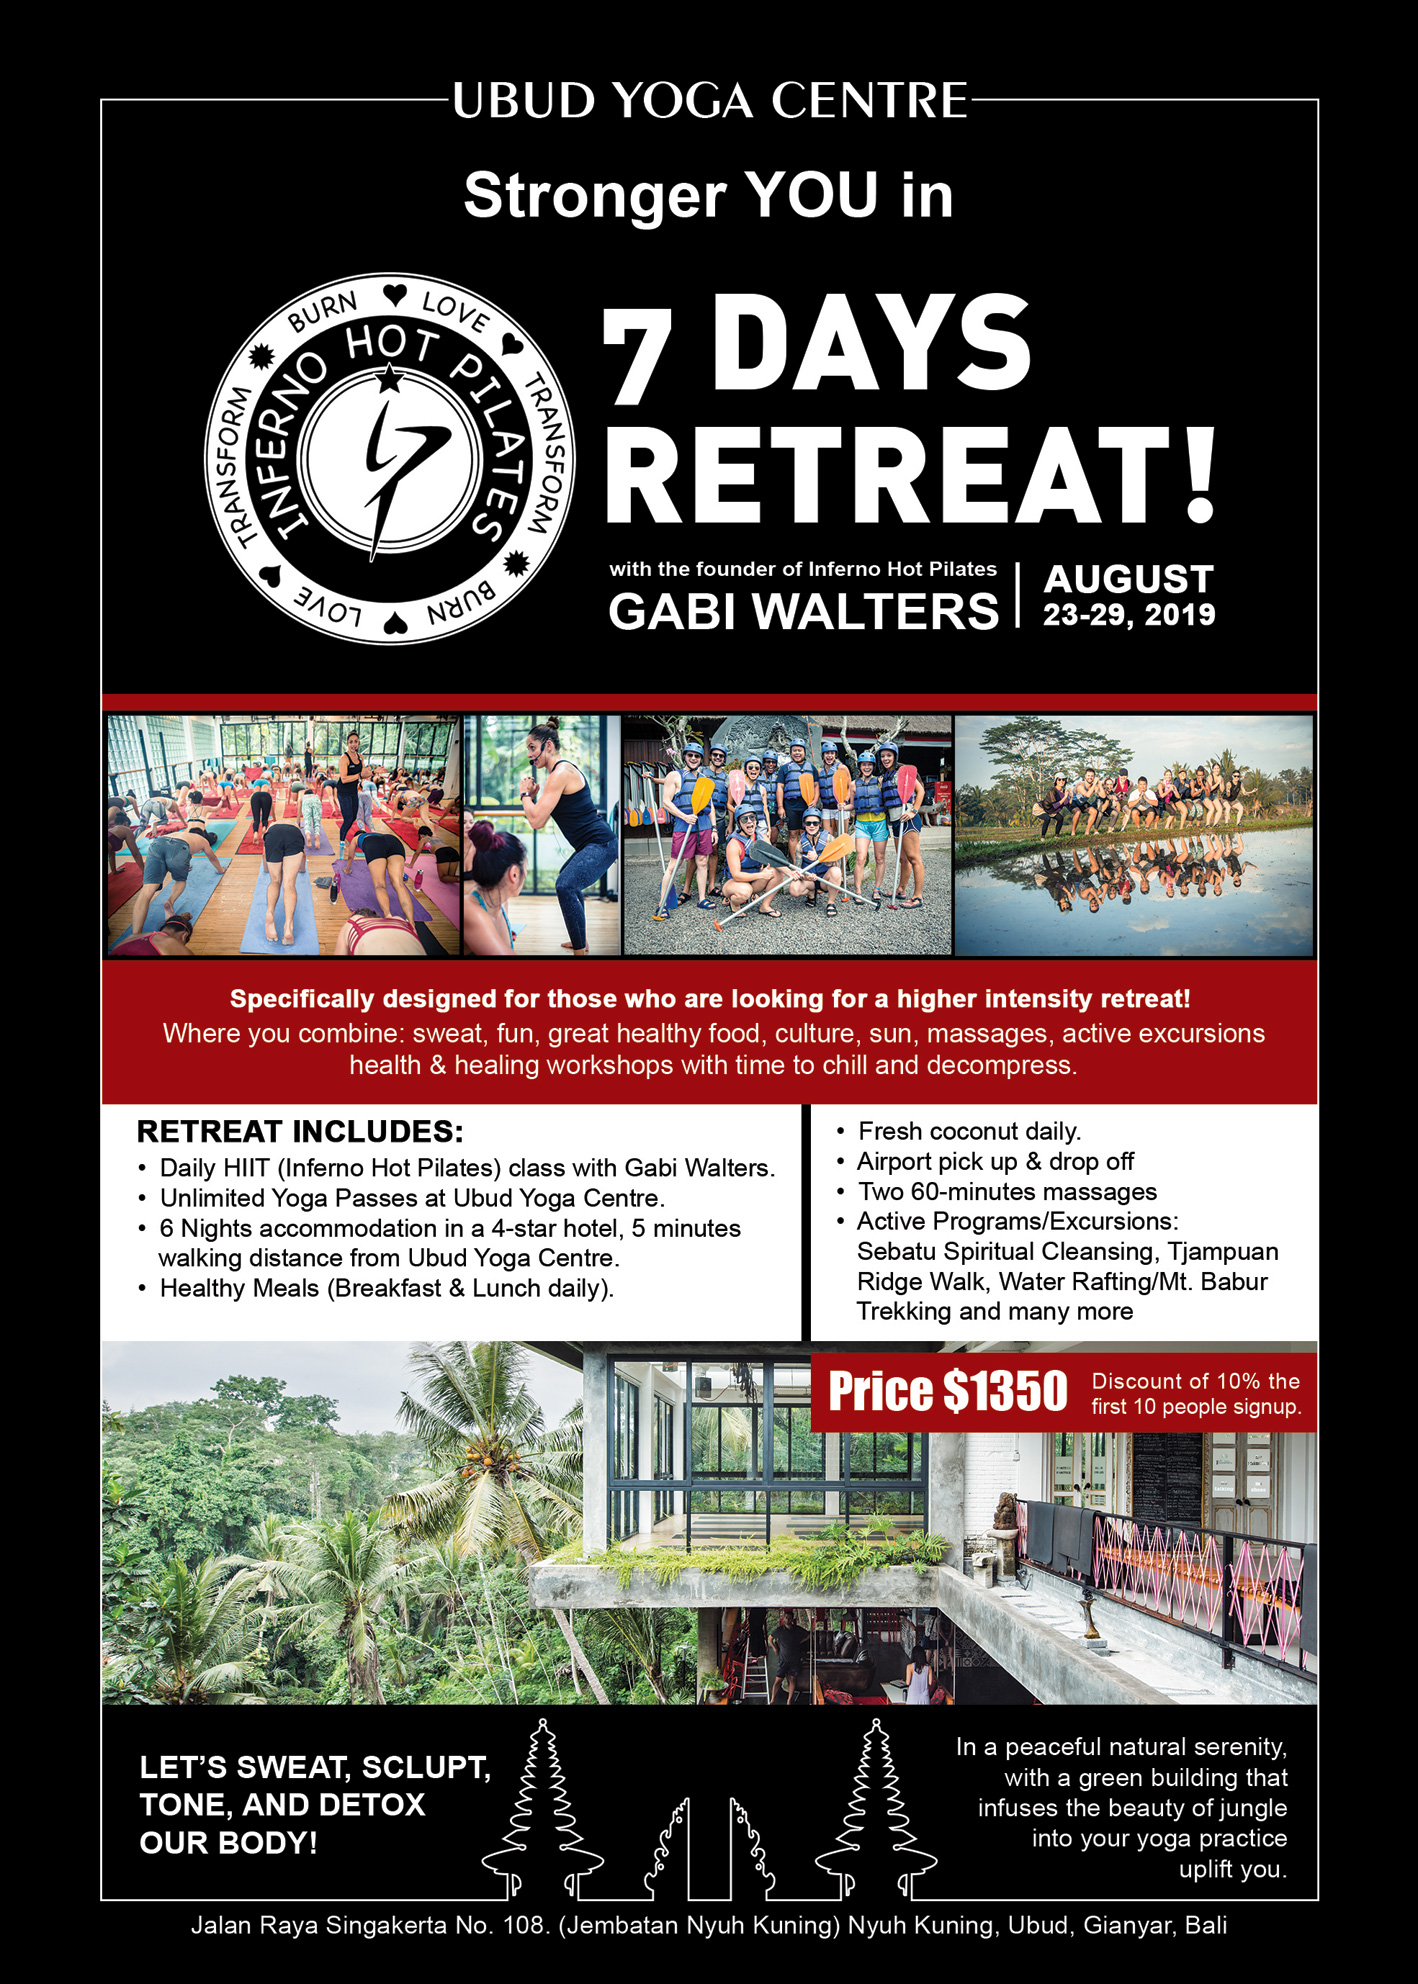 Carte Bali Avec Aeroport.7 Days Hot Pilates And Yoga Retreats With Gabi Walters Ubud Yoga